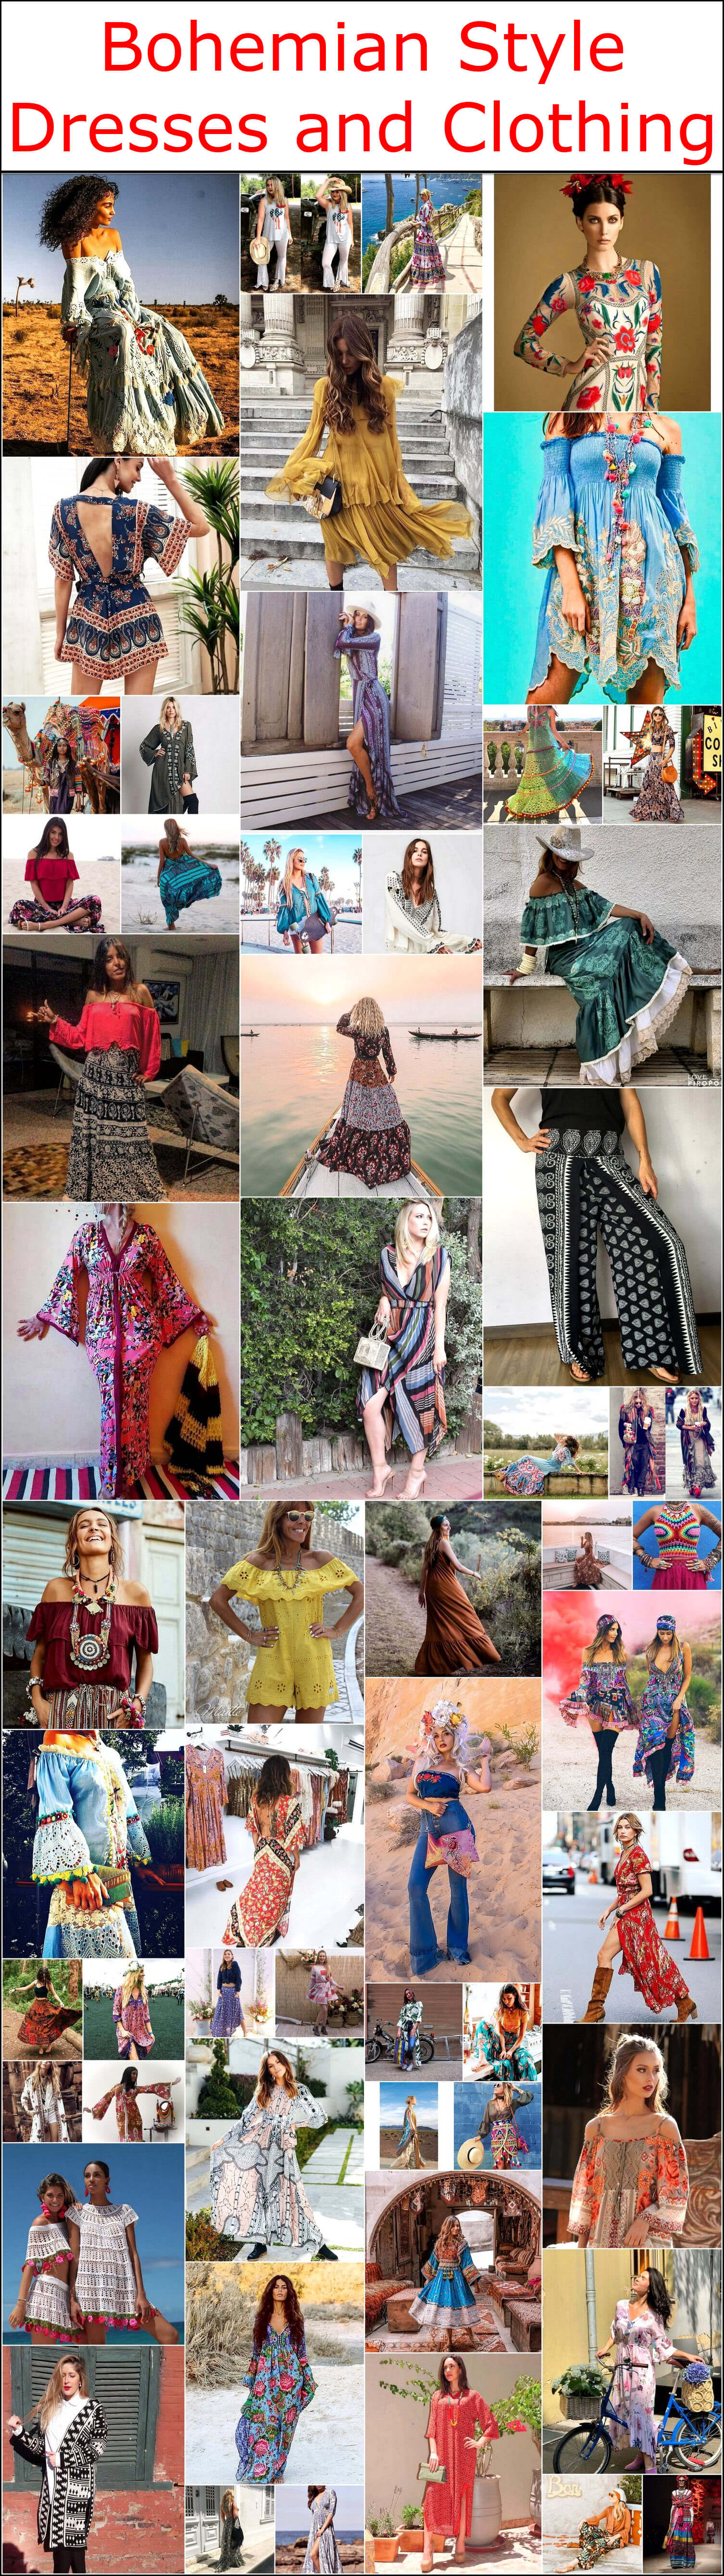 Bohemian Style Dresses and Clothing